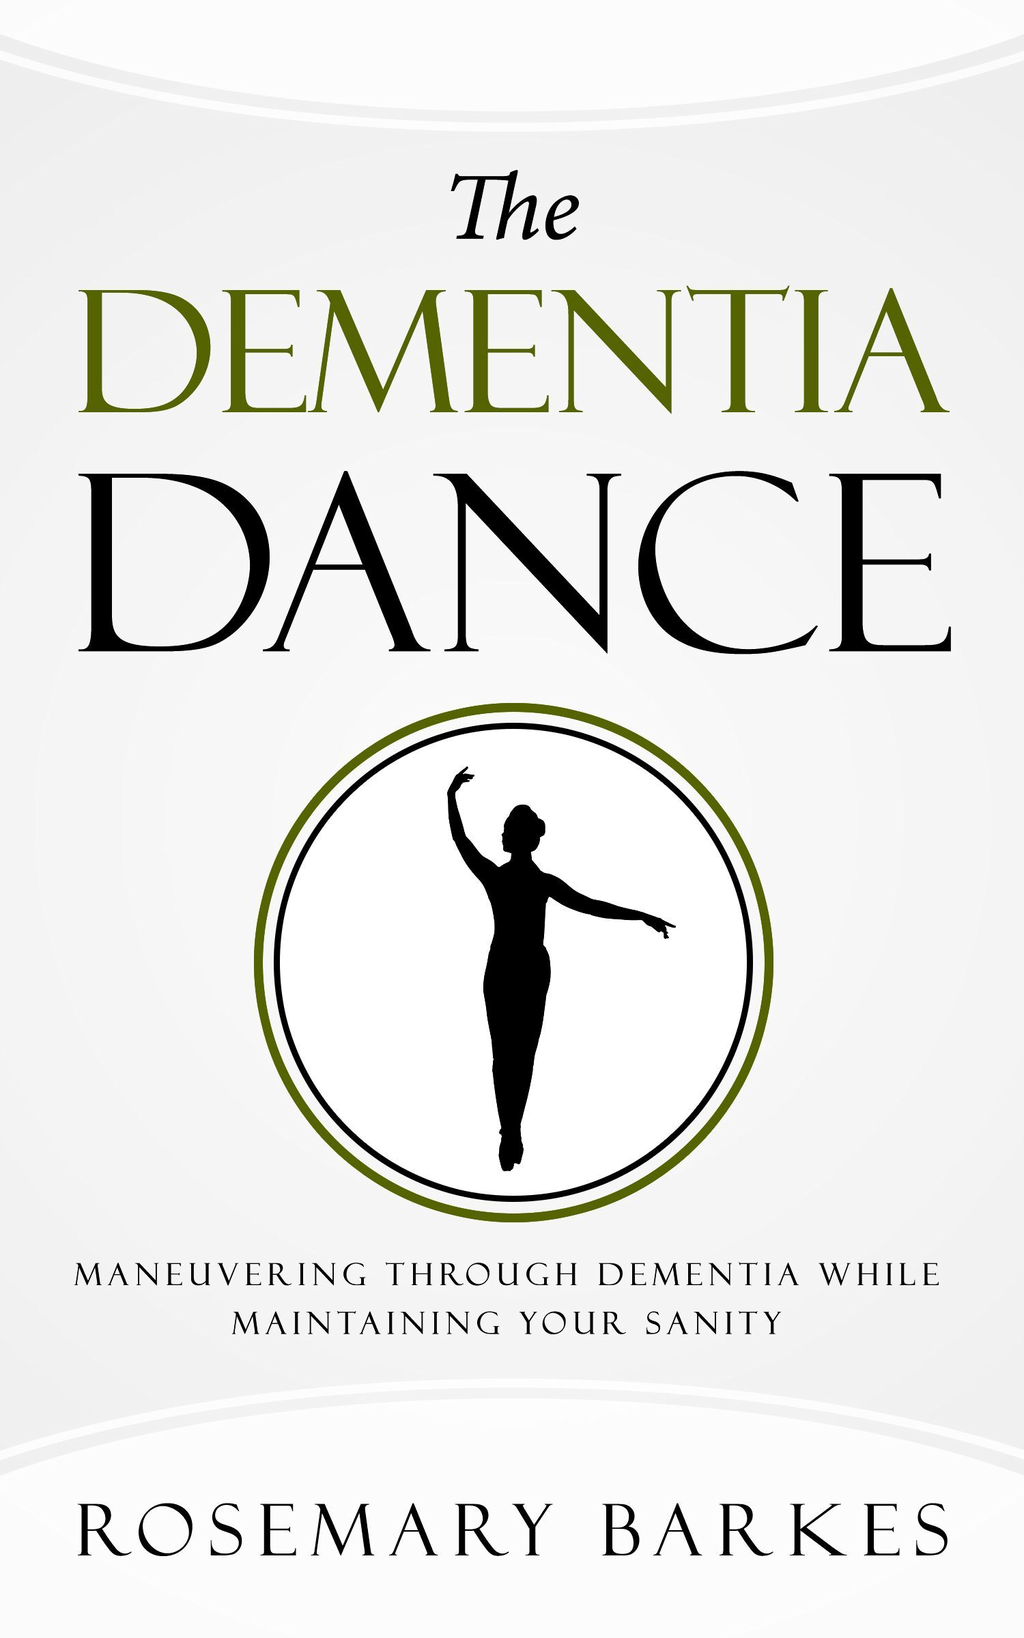 The Dementia Dance